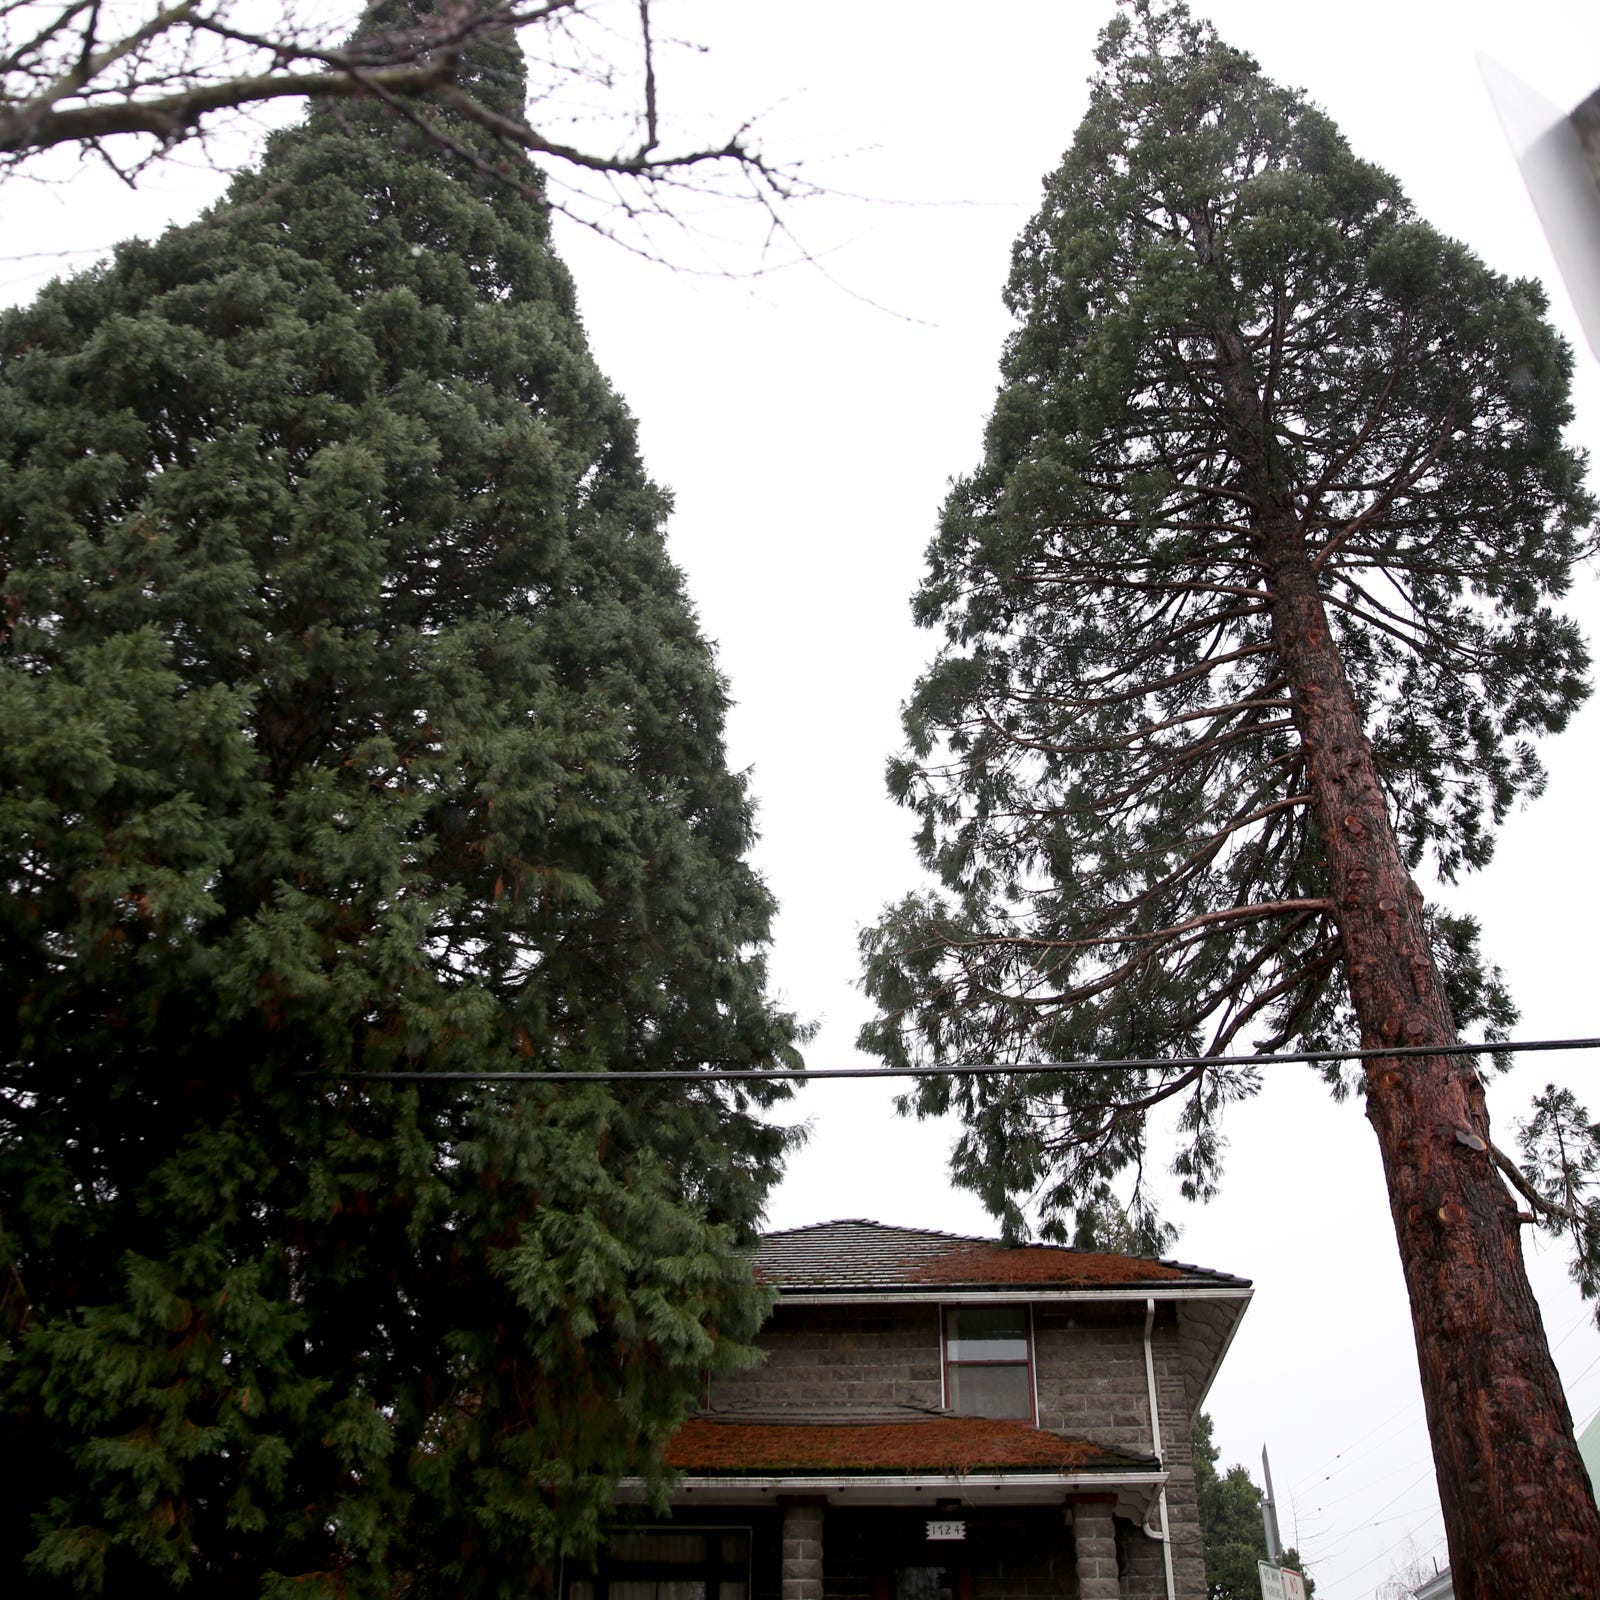 Salem says giant sequoia trees in historic district have to stay - for now